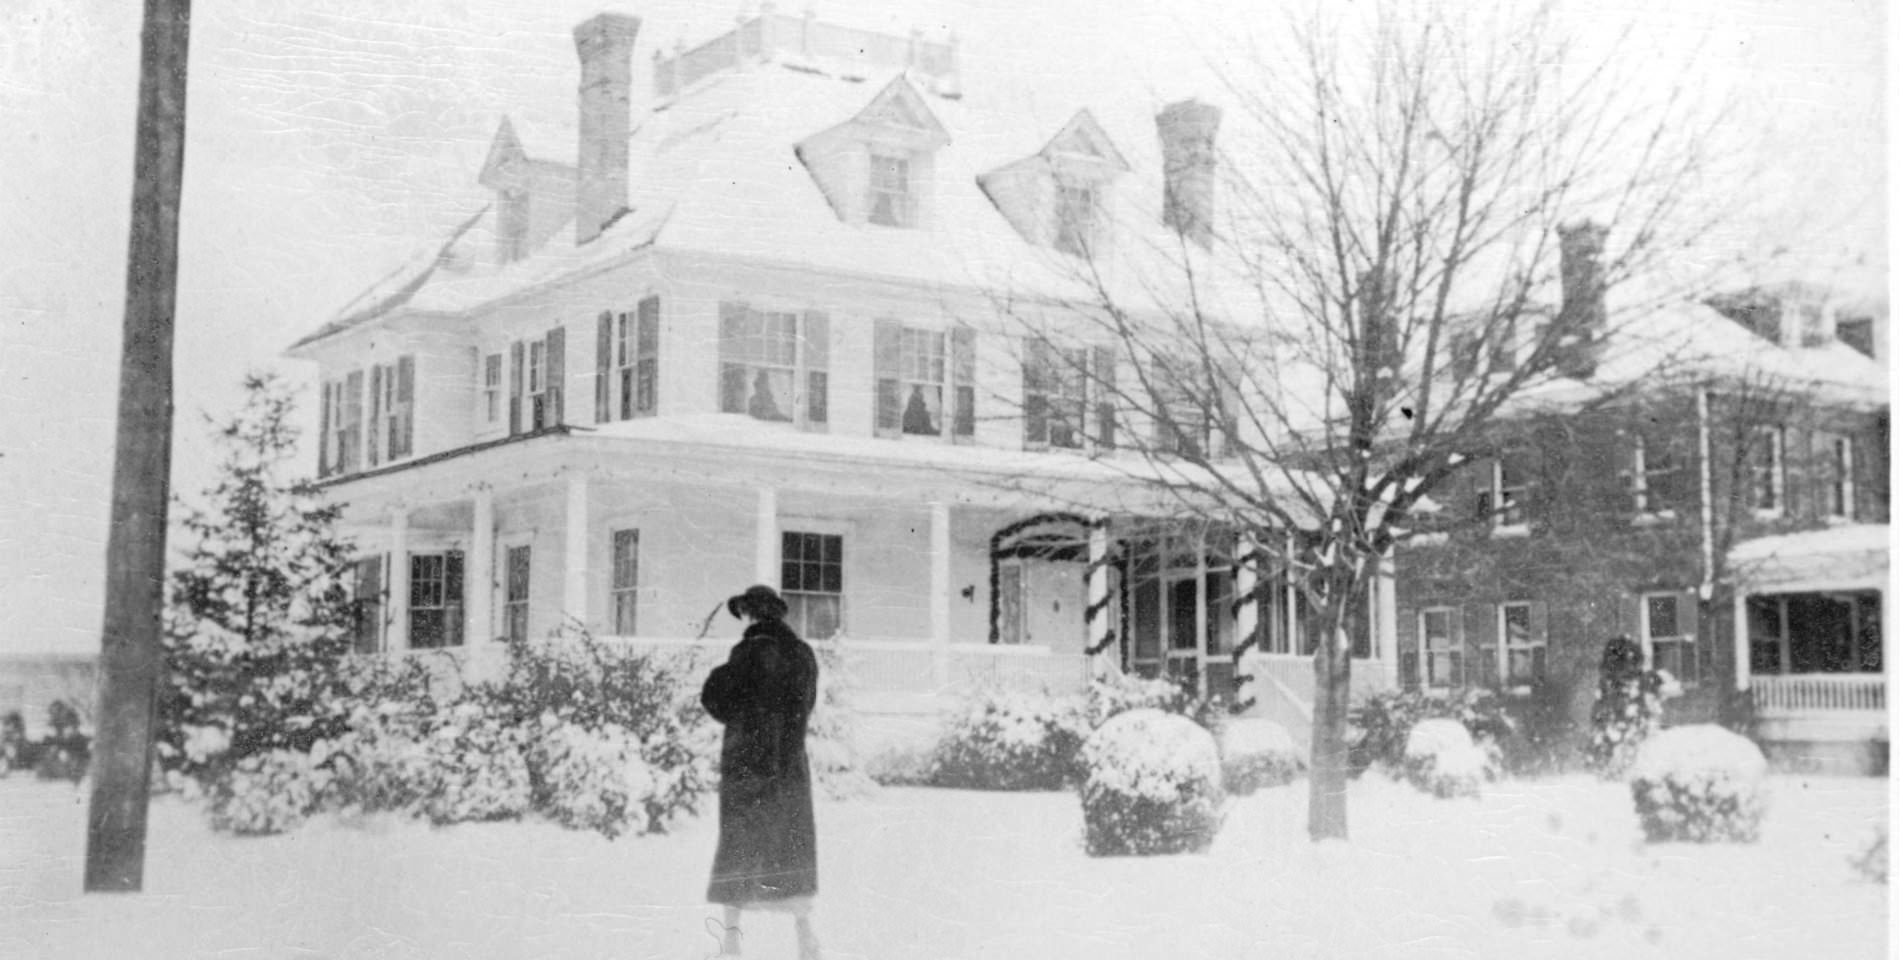 A woman in a black hat and long coat walks toward the Inn during a snowstorm.